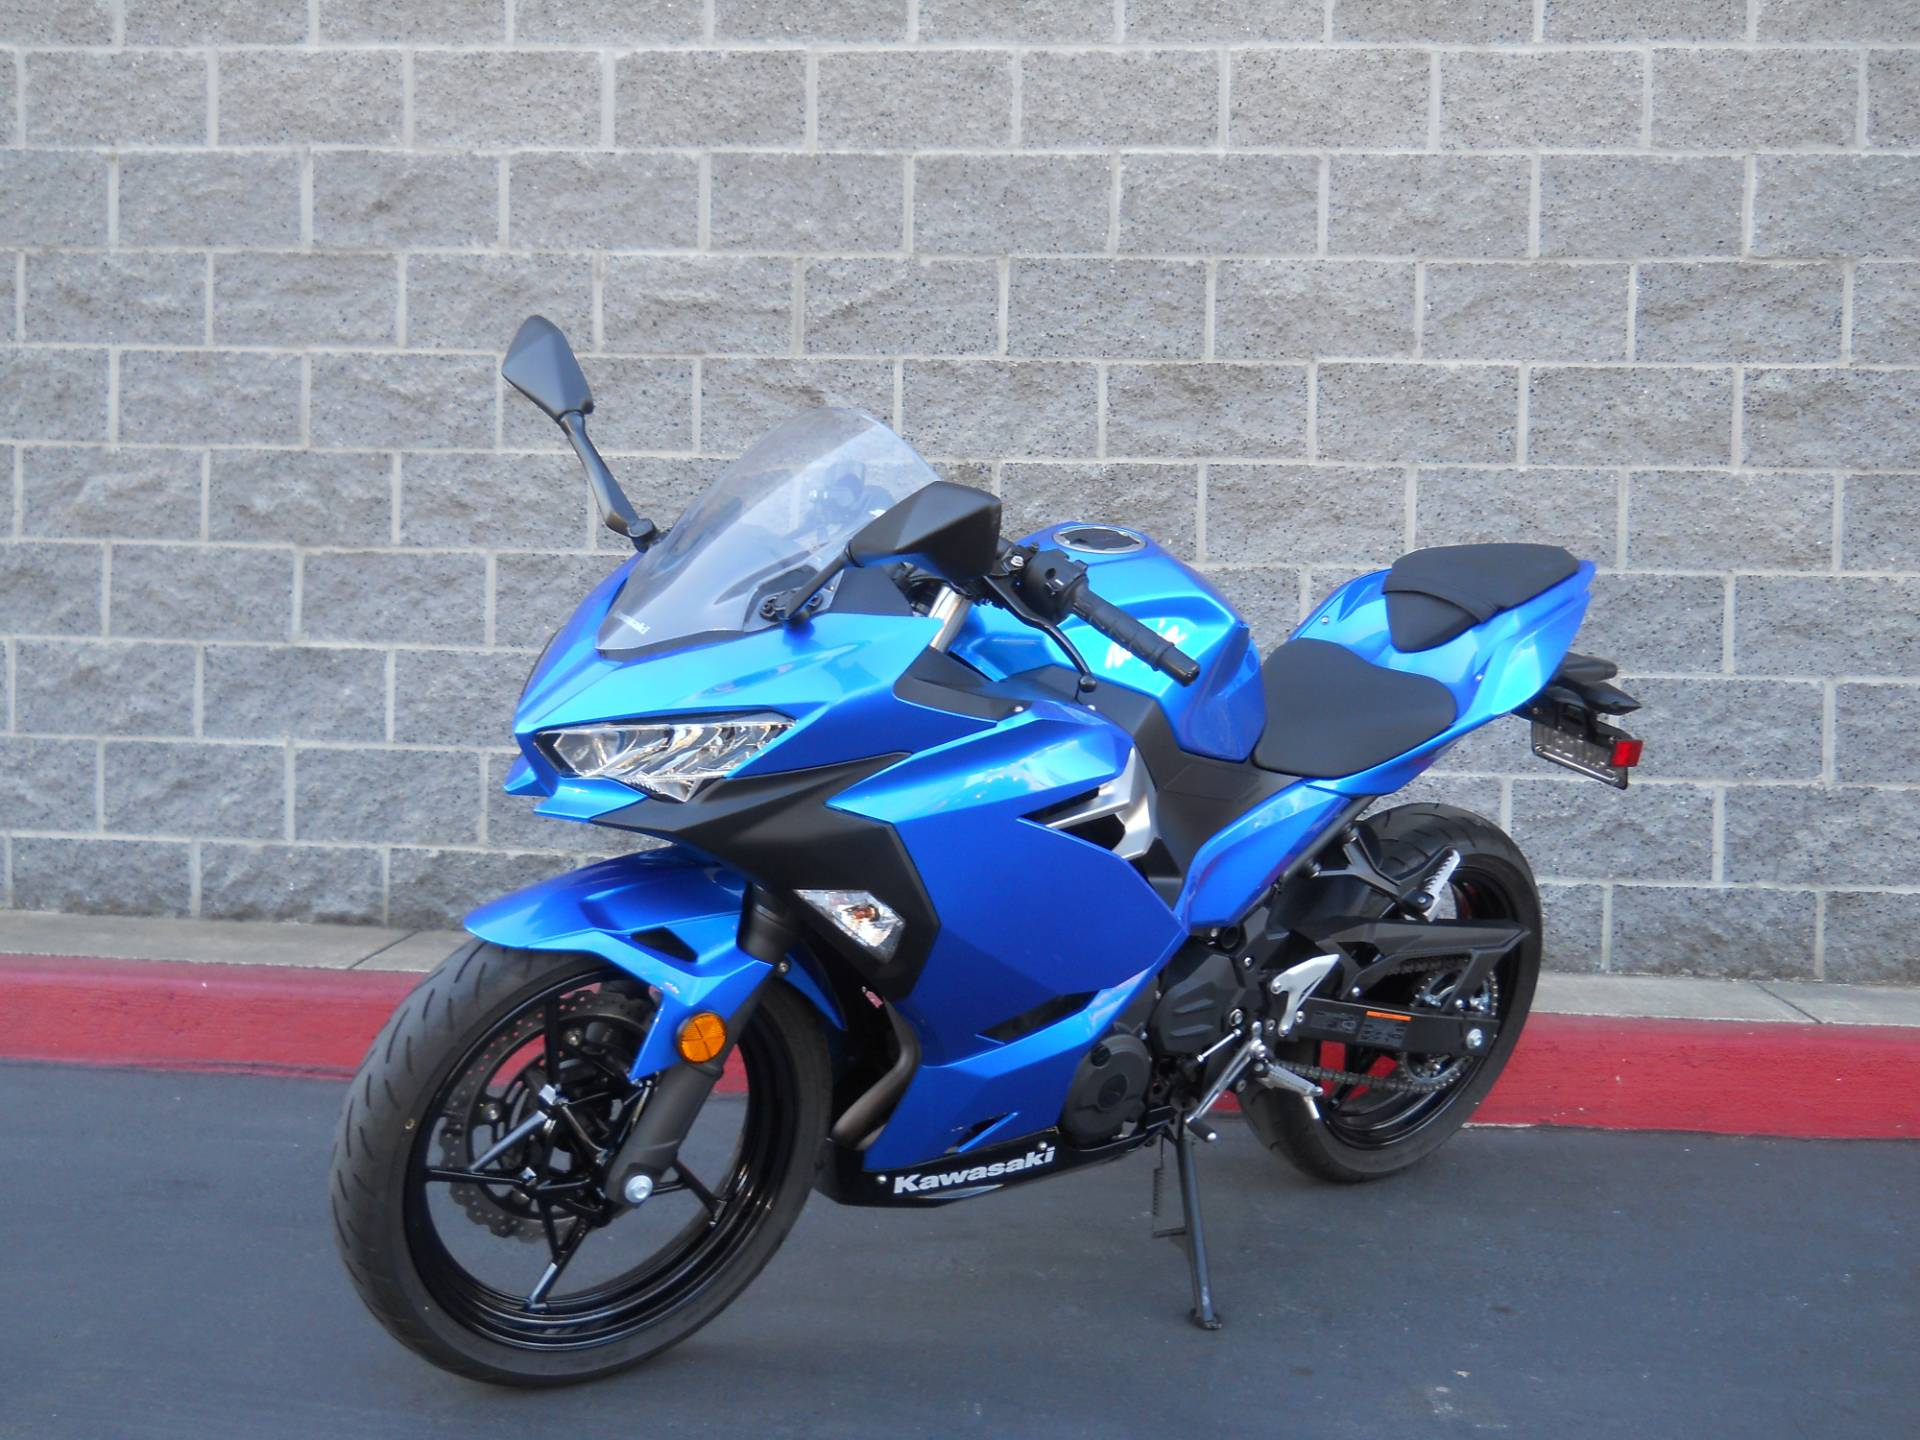 2018 Kawasaki Ninja 400 in Livermore, California - Photo 4